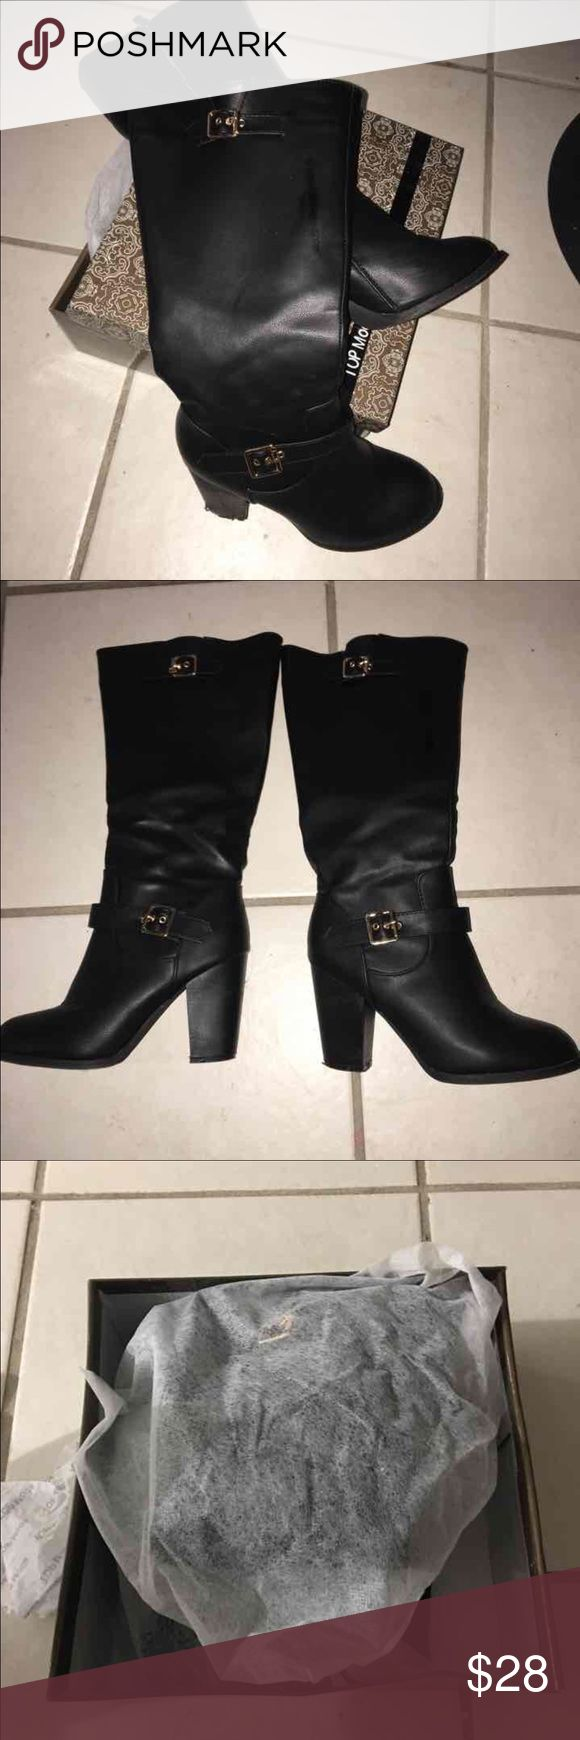 Boots like new used only 2 days I bought this 36$ plus tax this is like new i use it when the snow comes but my foots hurts cause of the hills ! Lol just want back my money cause i dont wnna use it anymore Shoes Ankle Boots & Booties